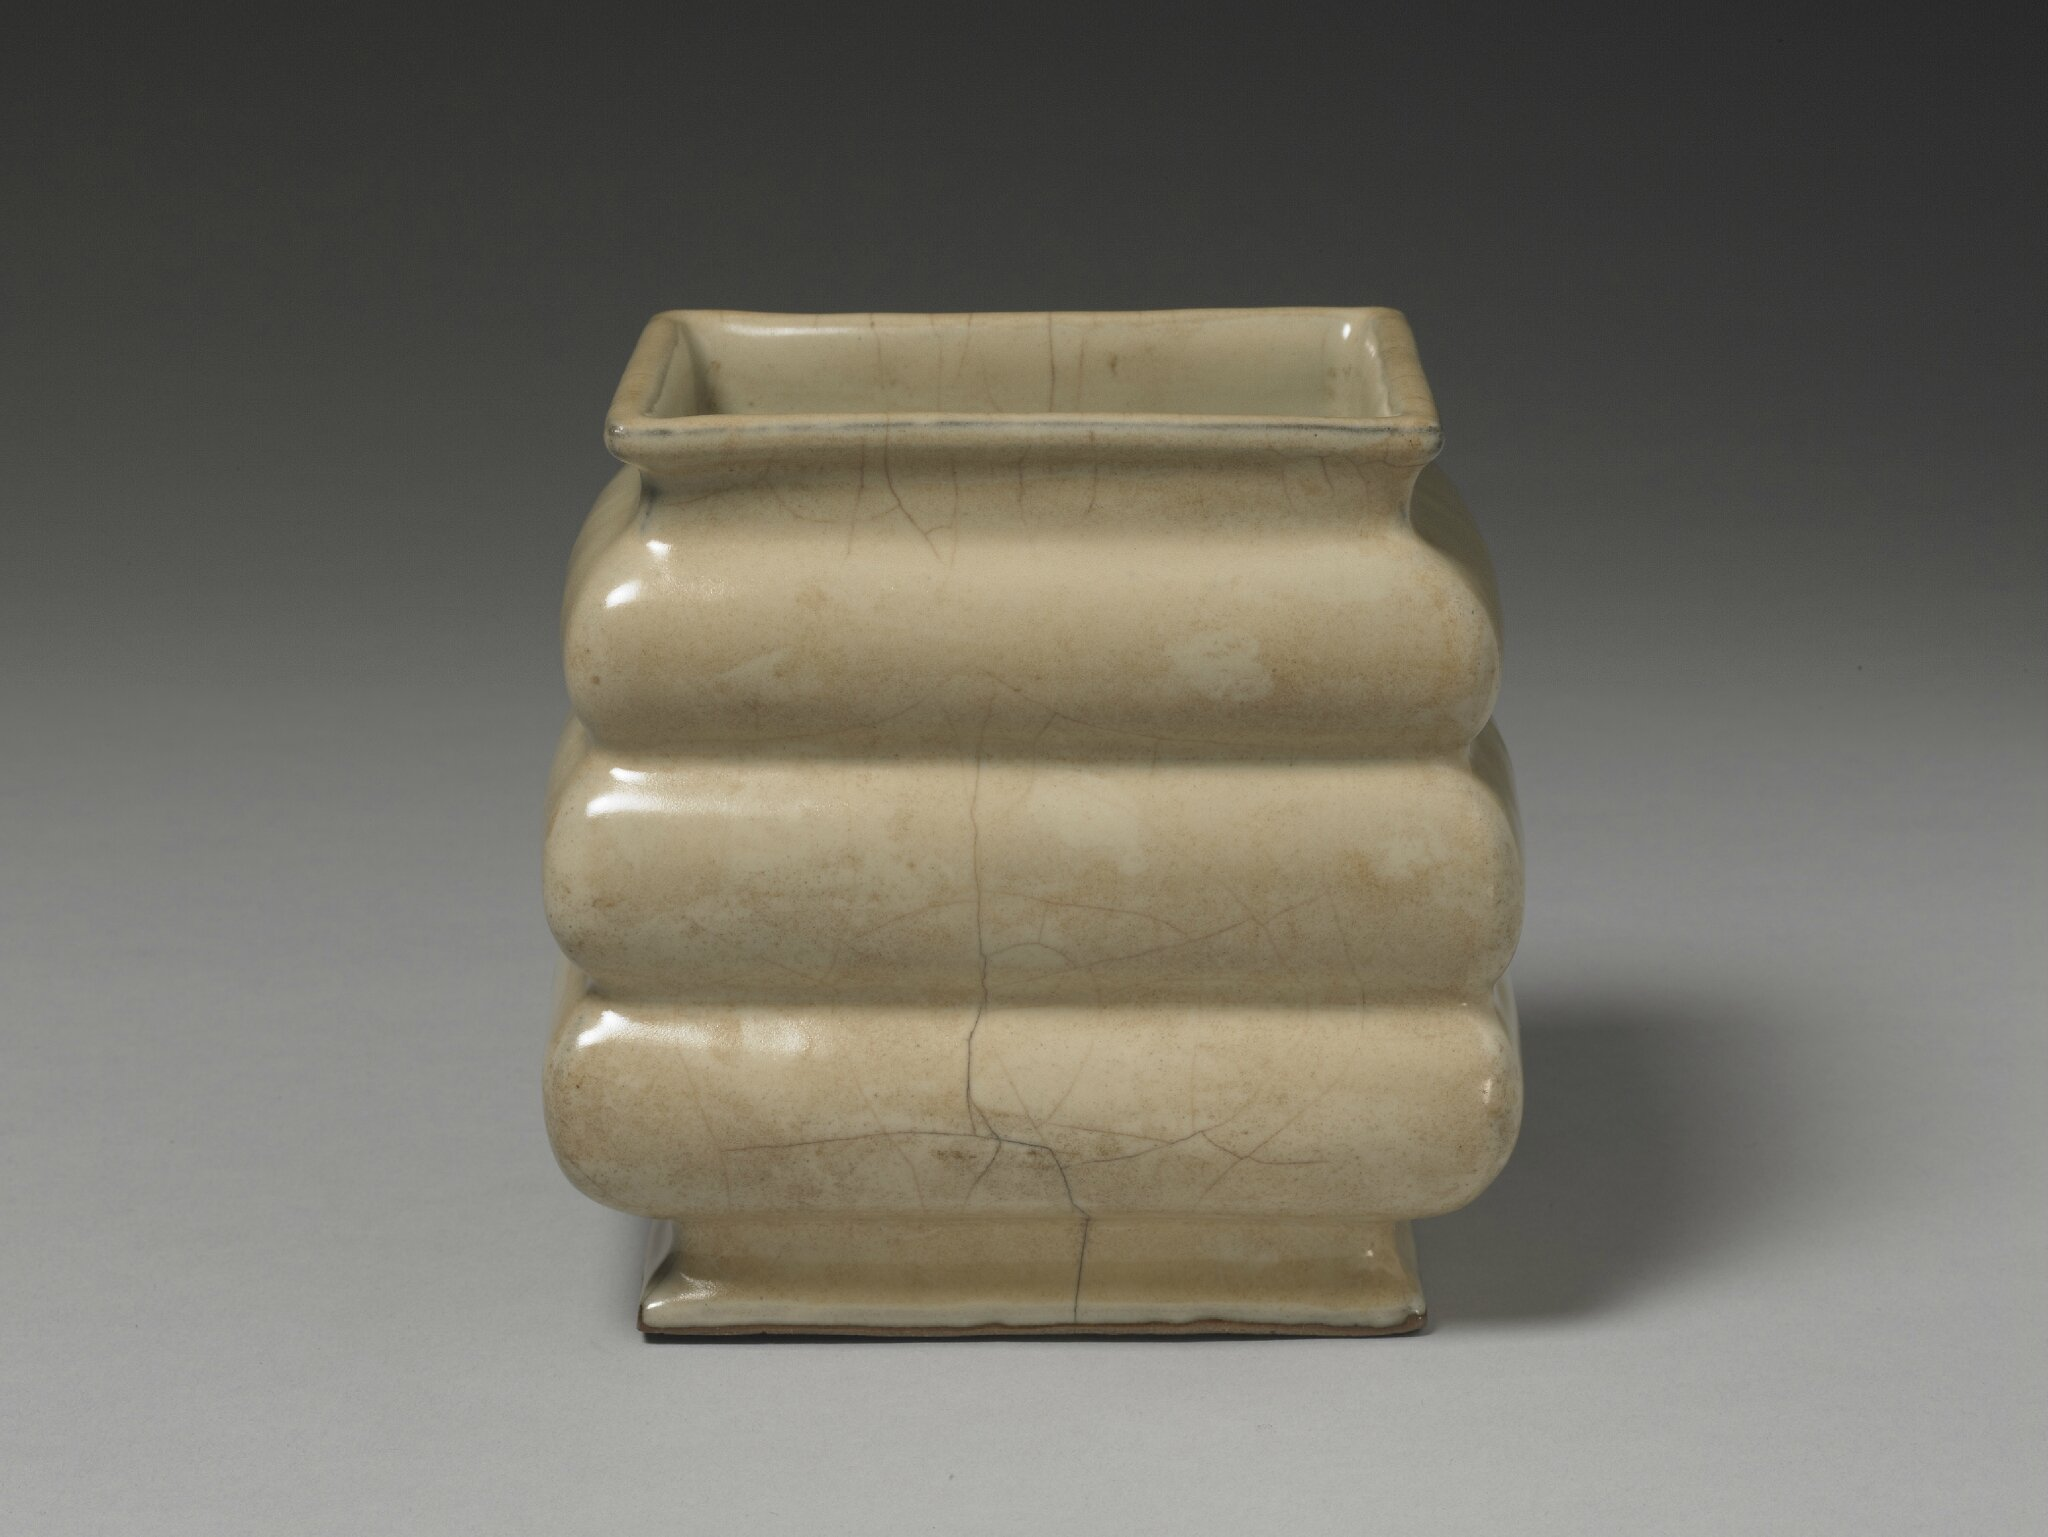 Stepped pot with cream-colored celadon glaze, Guan ware, Southern Song dynasty, 12th-13th century